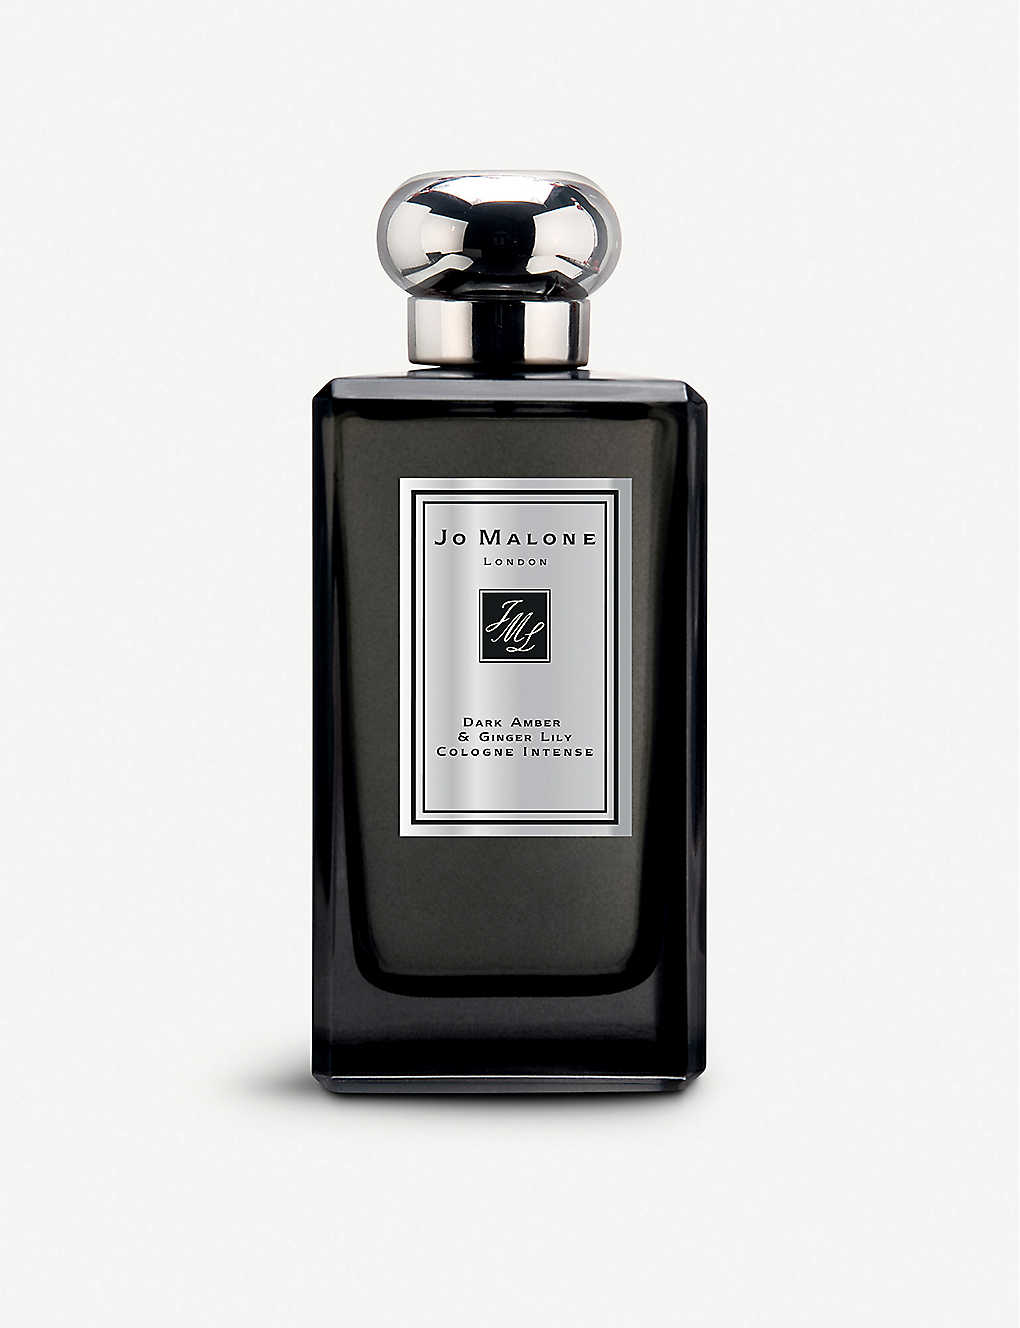 JO MALONE LONDON: Dark Amber & Ginger Lily Cologne Intense 100ml